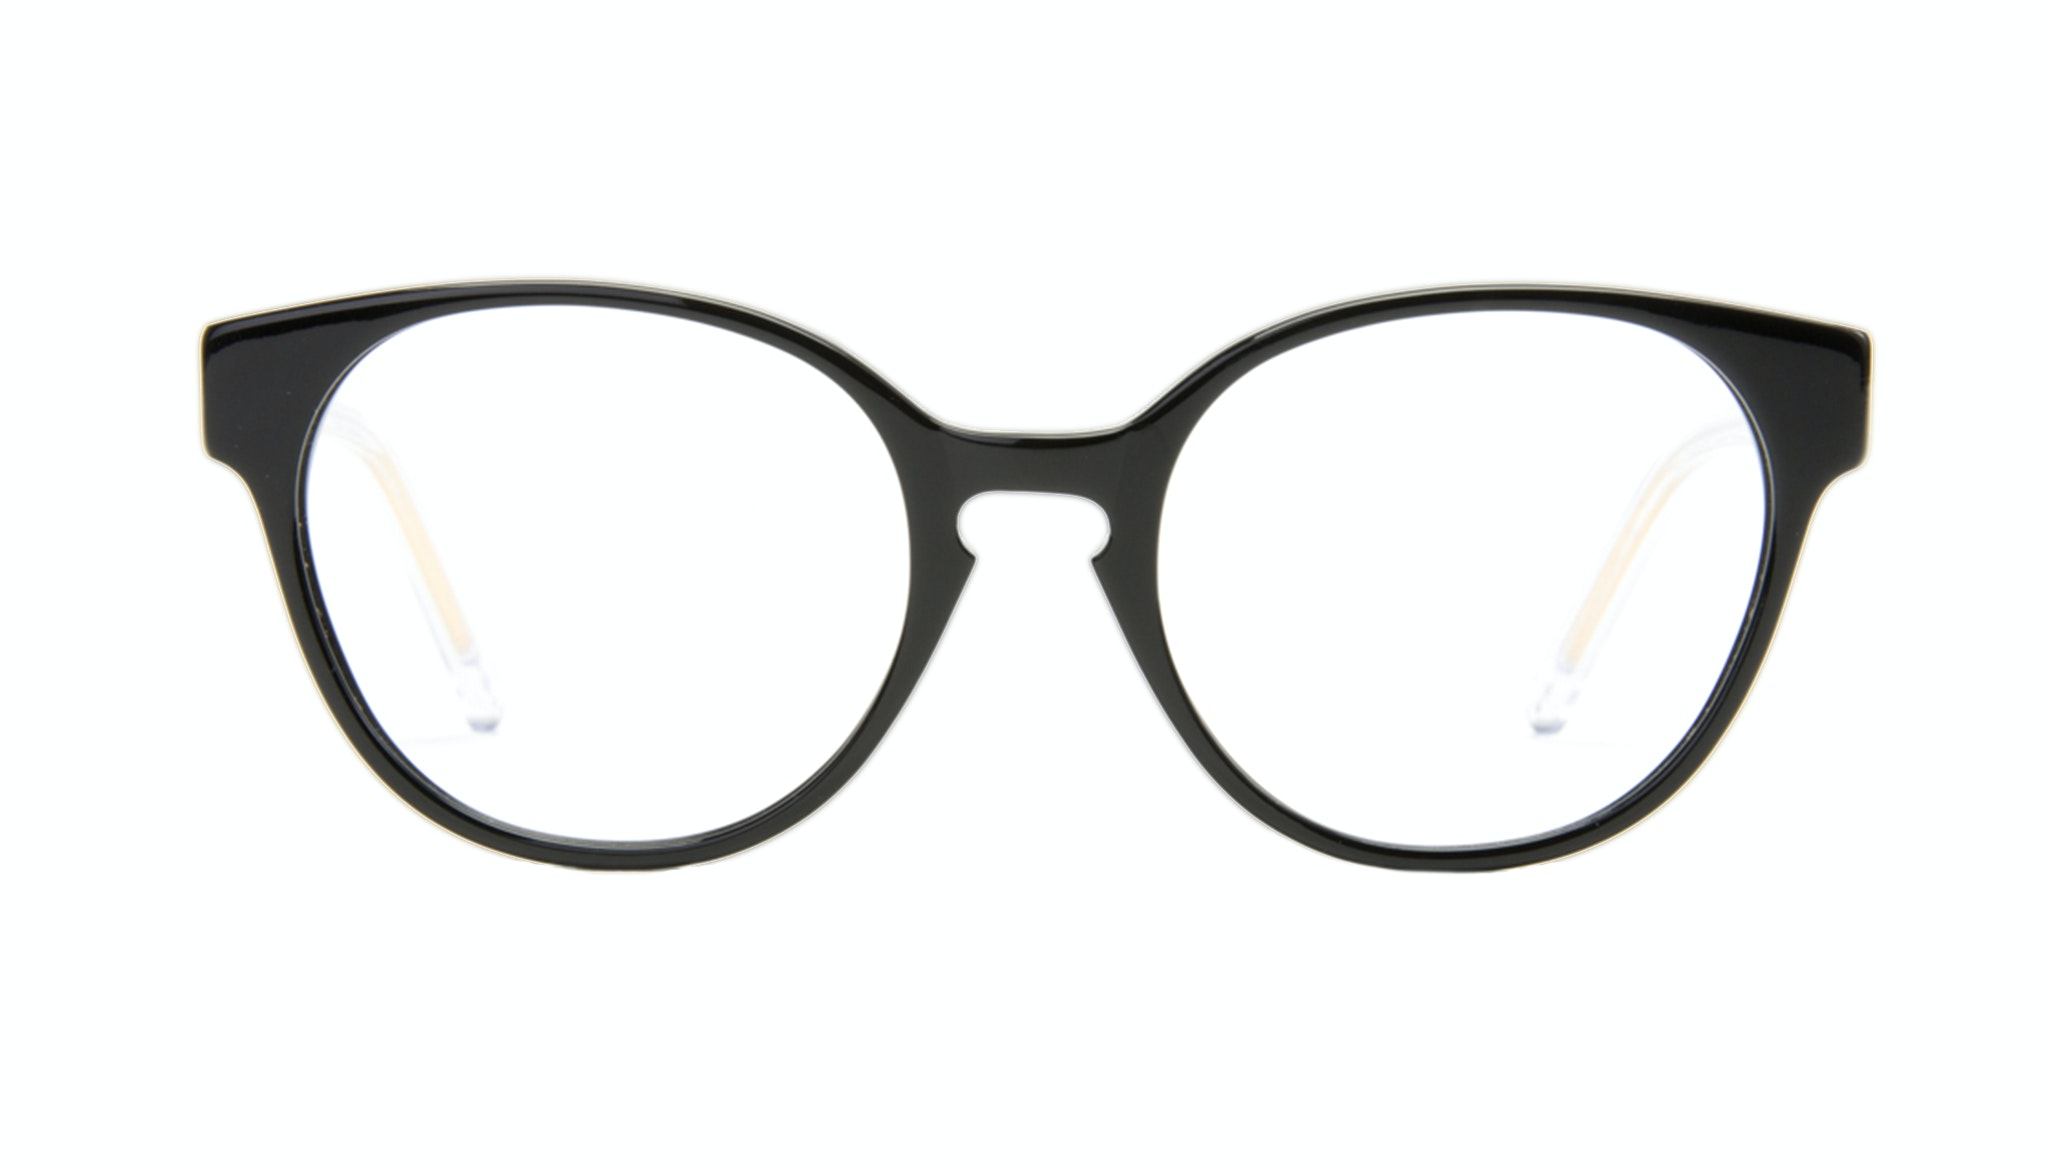 Affordable Fashion Glasses Round Eyeglasses Women Winsome Black Copper Front